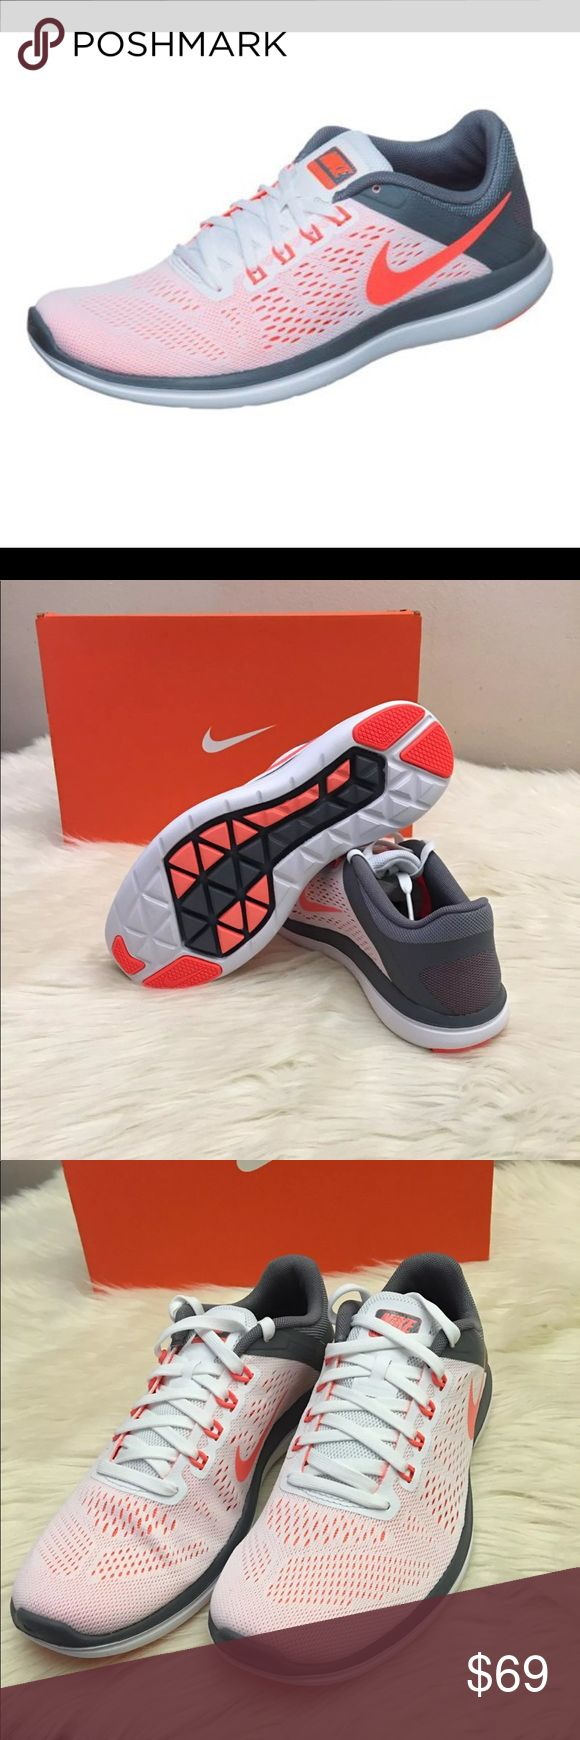 NIKE flex RN 2016 new Available in different sizes in women s  edf8a4ef73b7b